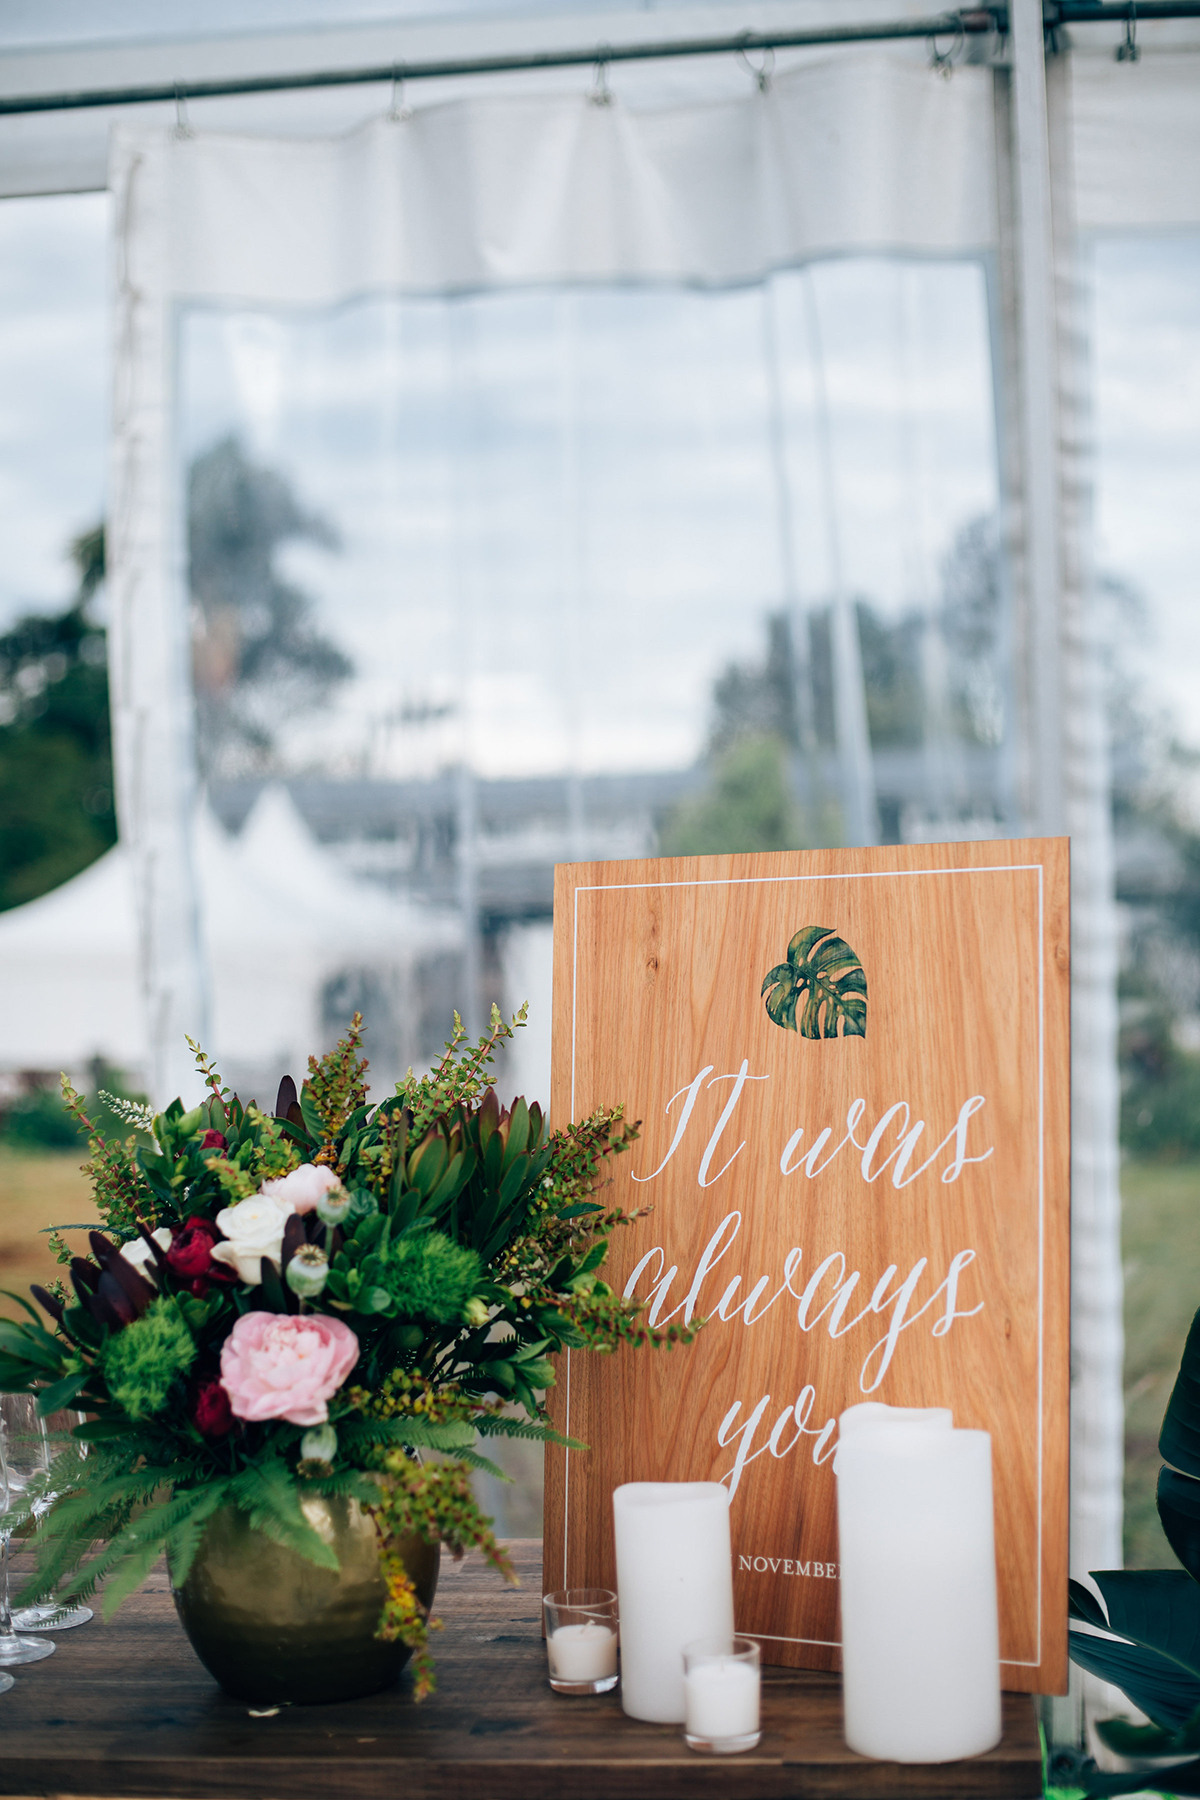 Jenna + Paul | Byron Bay Wedding Venue | The Events Lounge - Byron Bay Wedding Planning and Styling - www.theeventslounge.com.au